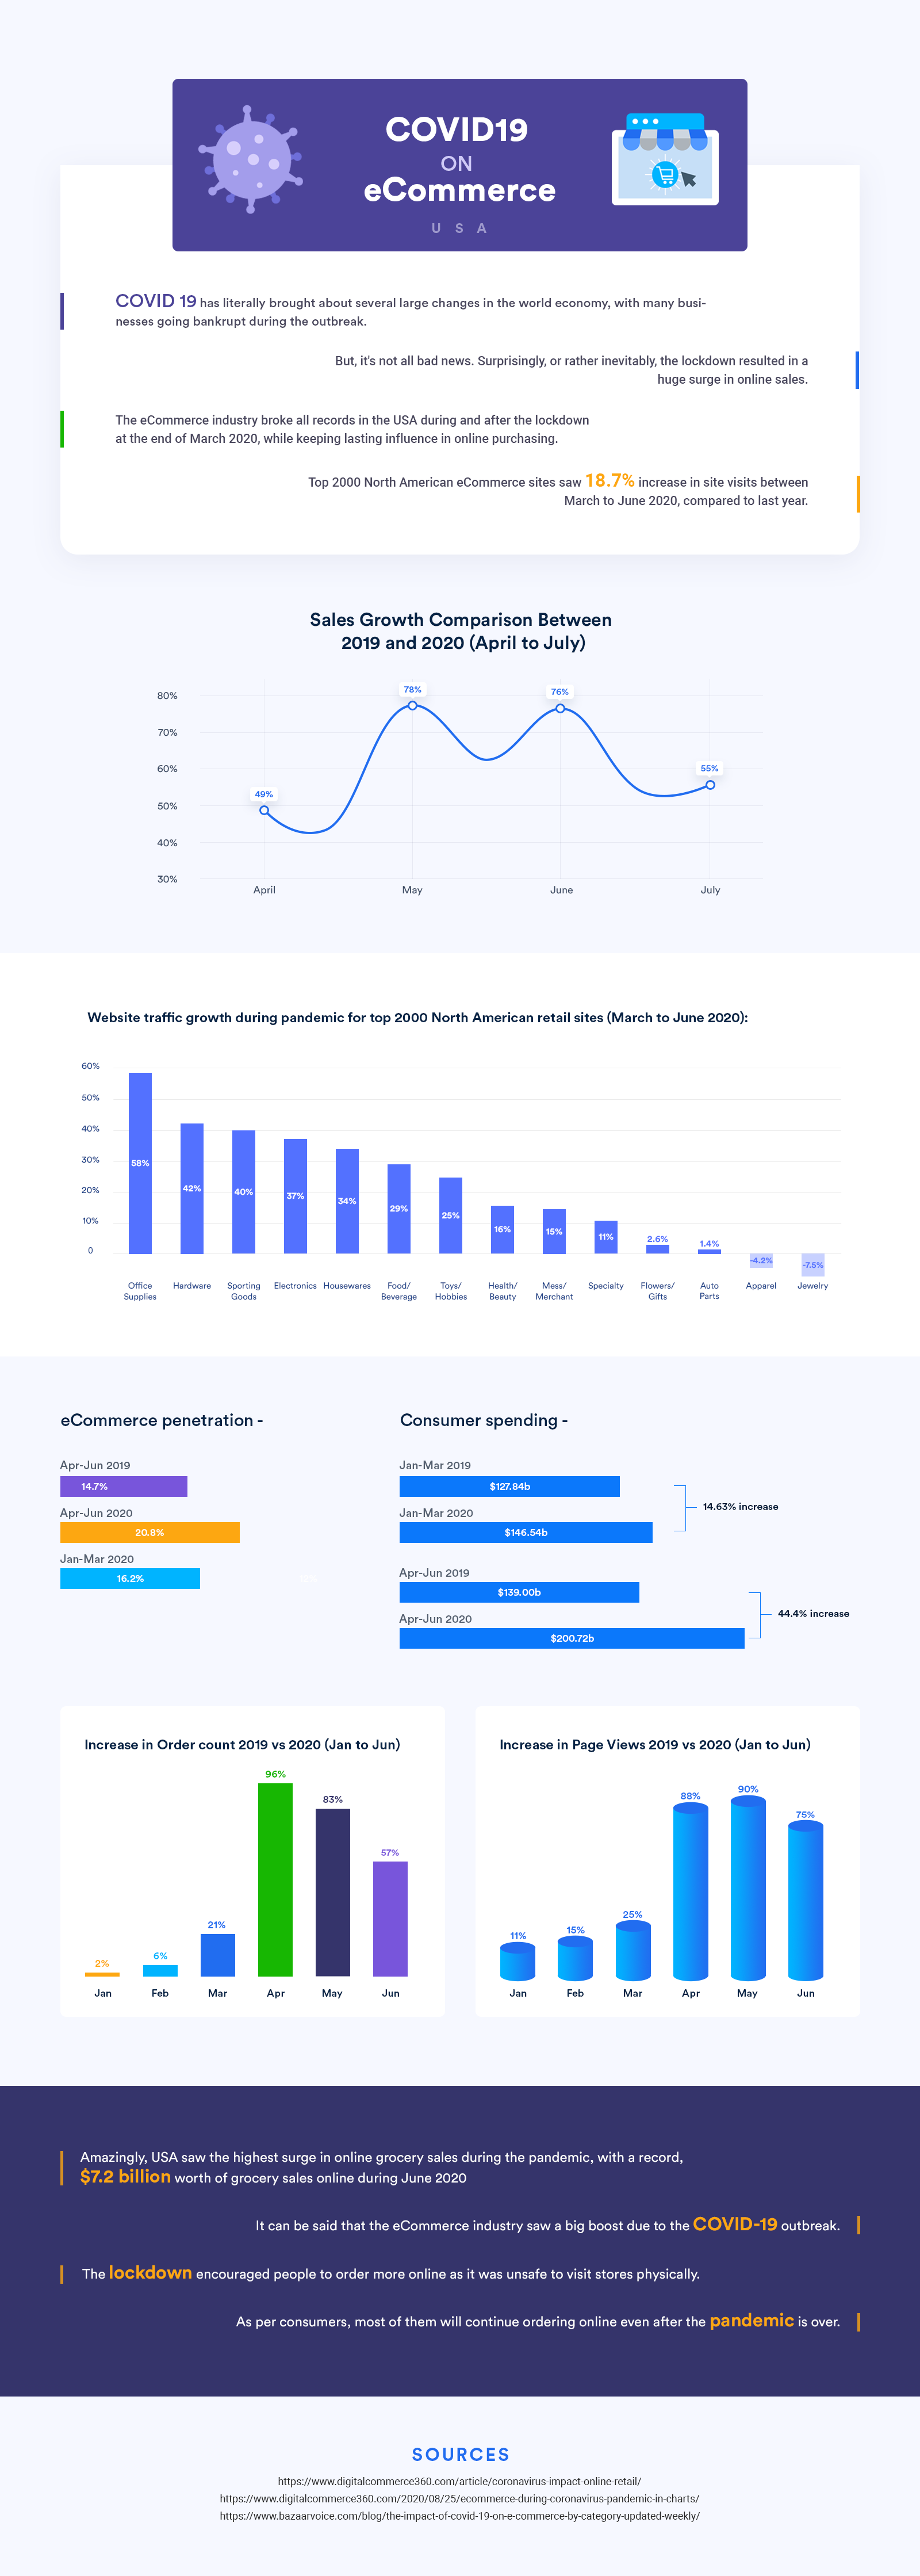 COVID19 On eCommerce In The USA - Infographic